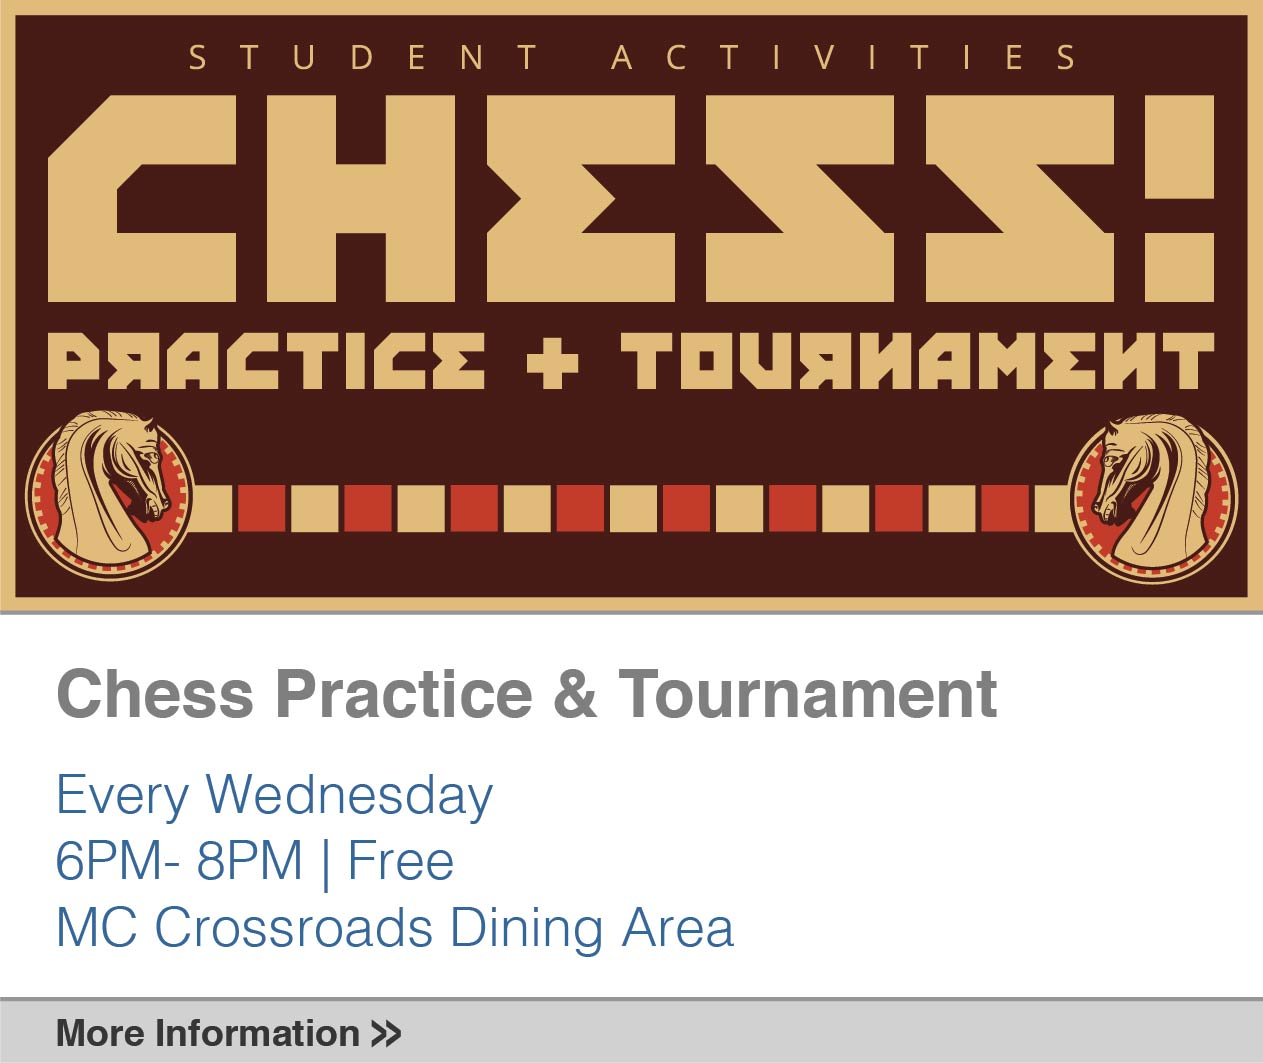 Chess Practice and Tournament Every Wednesday 6pm-8pm Free, MC Crossroads Dining Area